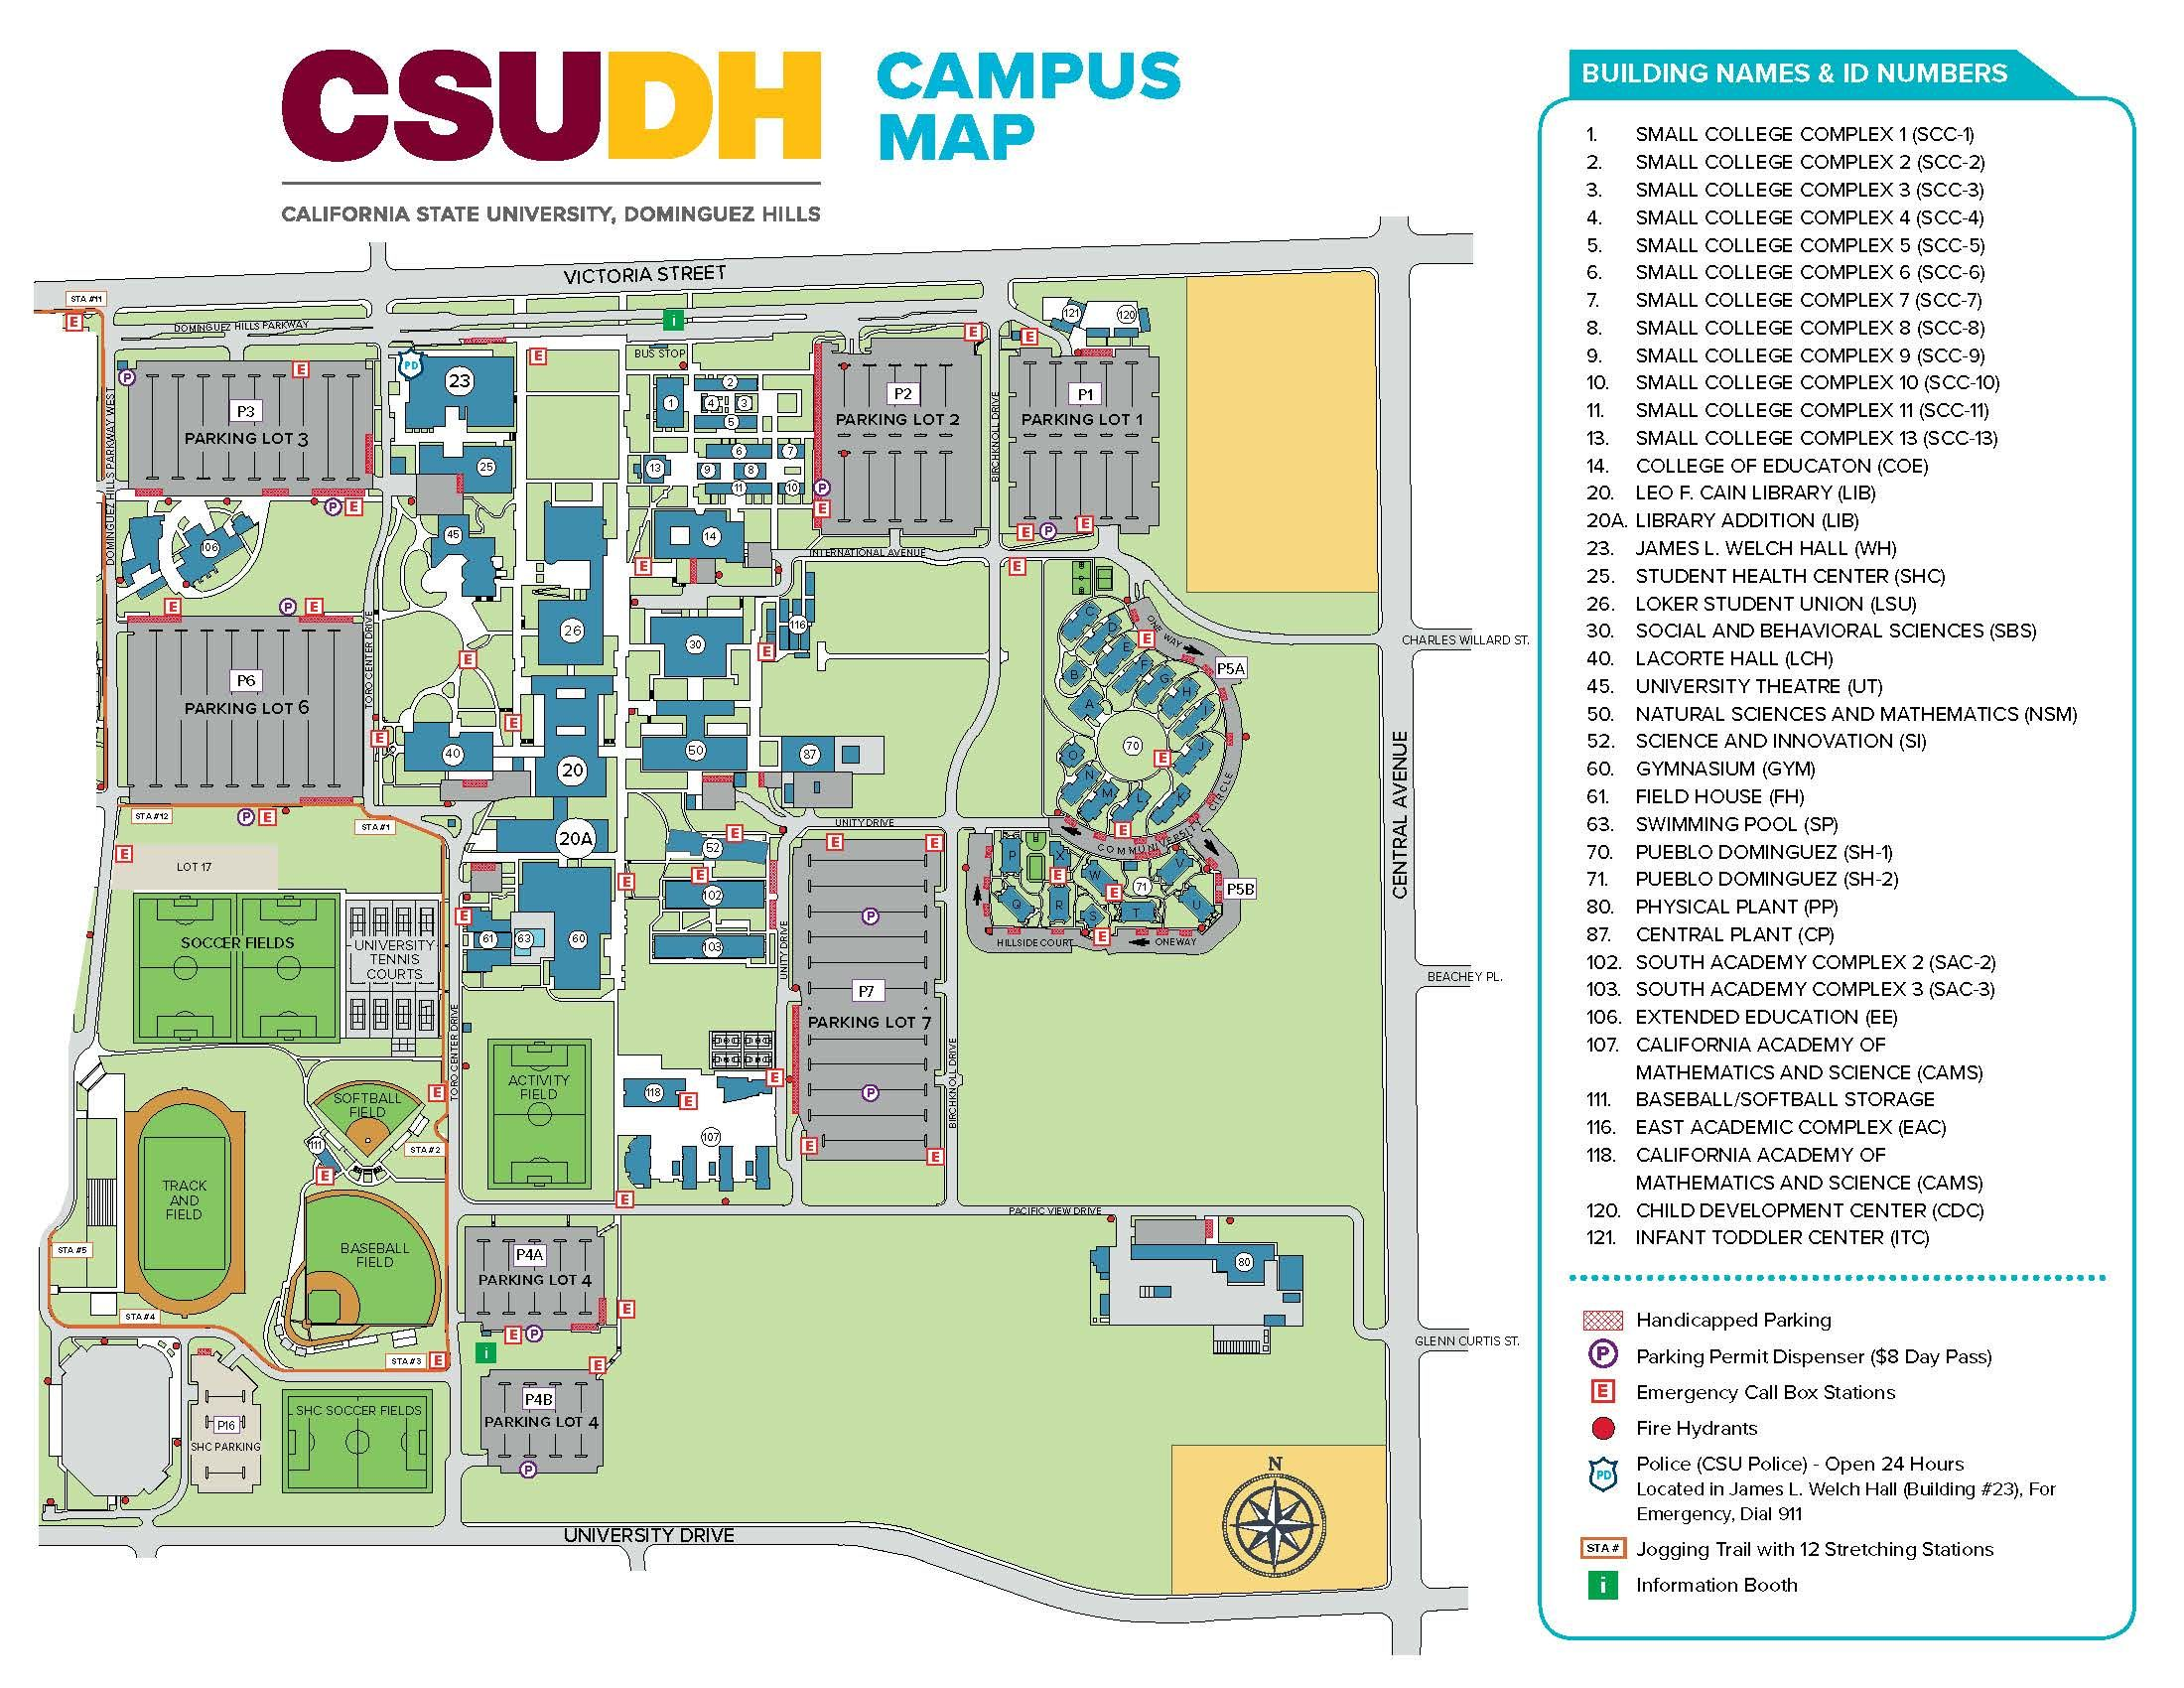 olympic college campus map Csudh Map From Csudh 3 Campus Campusmap Csudh California olympic college campus map